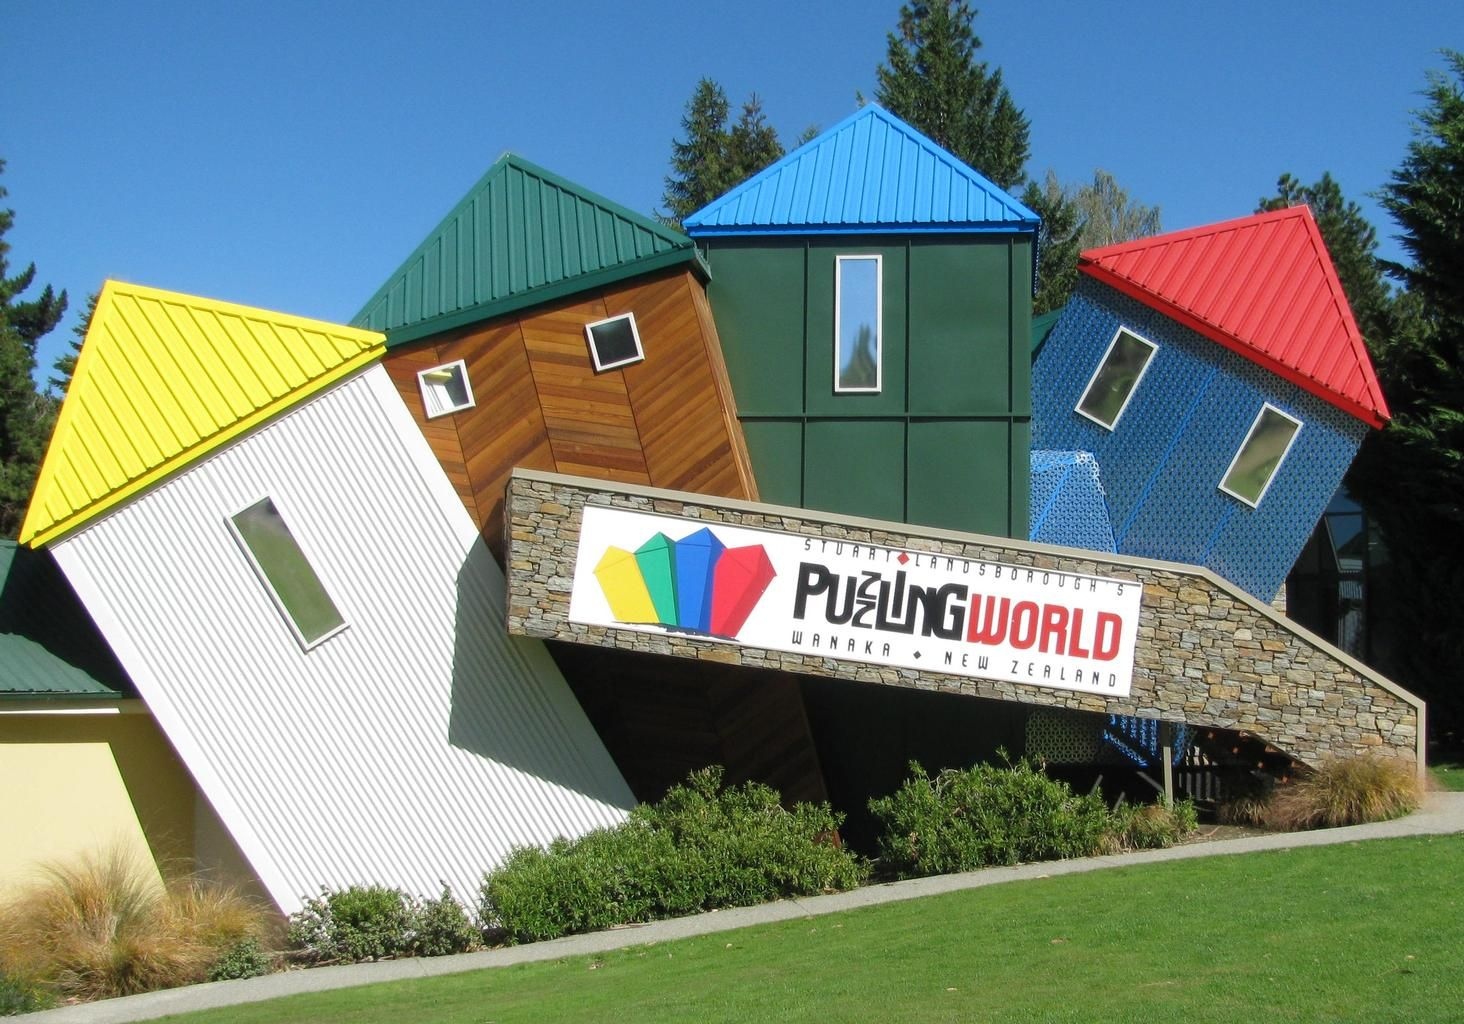 Fun, quirky, exciting, and always engaging, created by people with passions to share... Wanaka's attractions are unique, just like the personalities behind them.